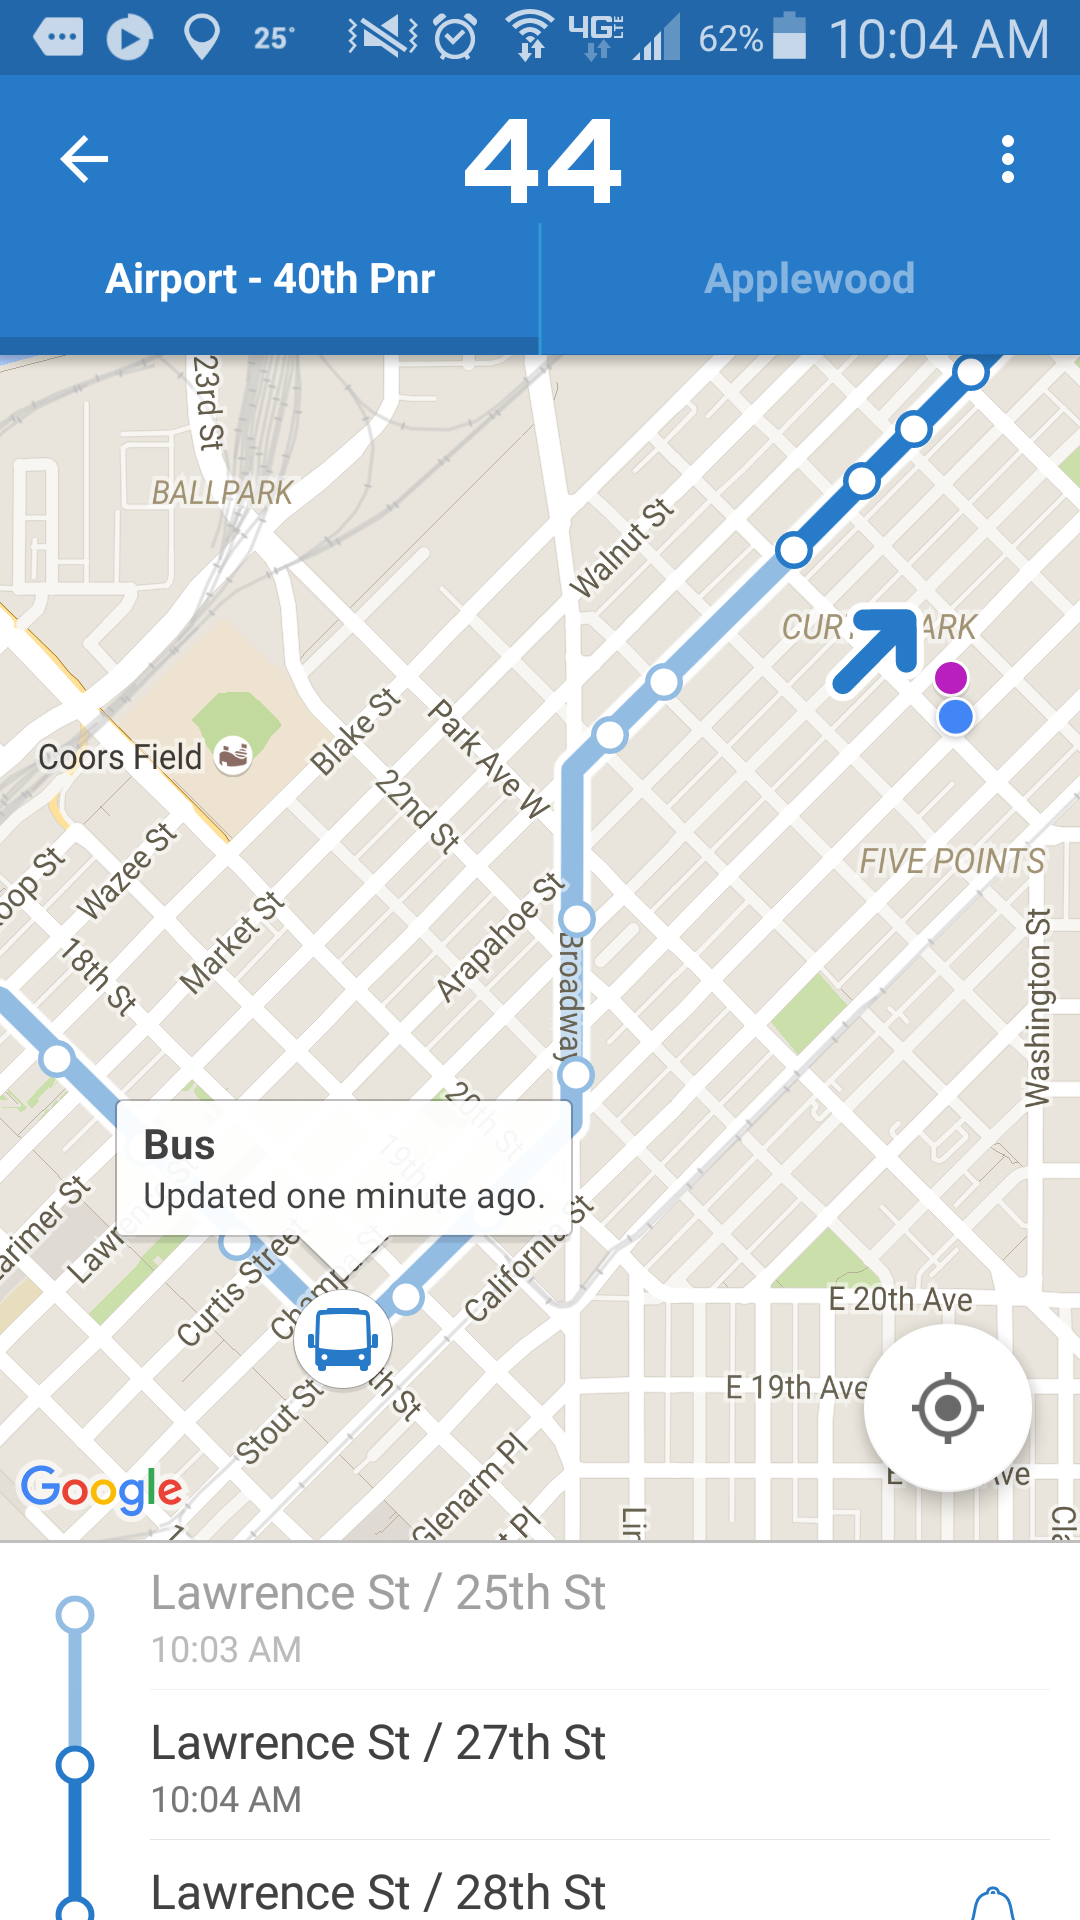 Inc transportation notes january 14 2016 inter neighborhood real time transit info comes to rtd steve szczecina rtd acting digital communications manager its been a long time in the making but real time transit malvernweather Choice Image